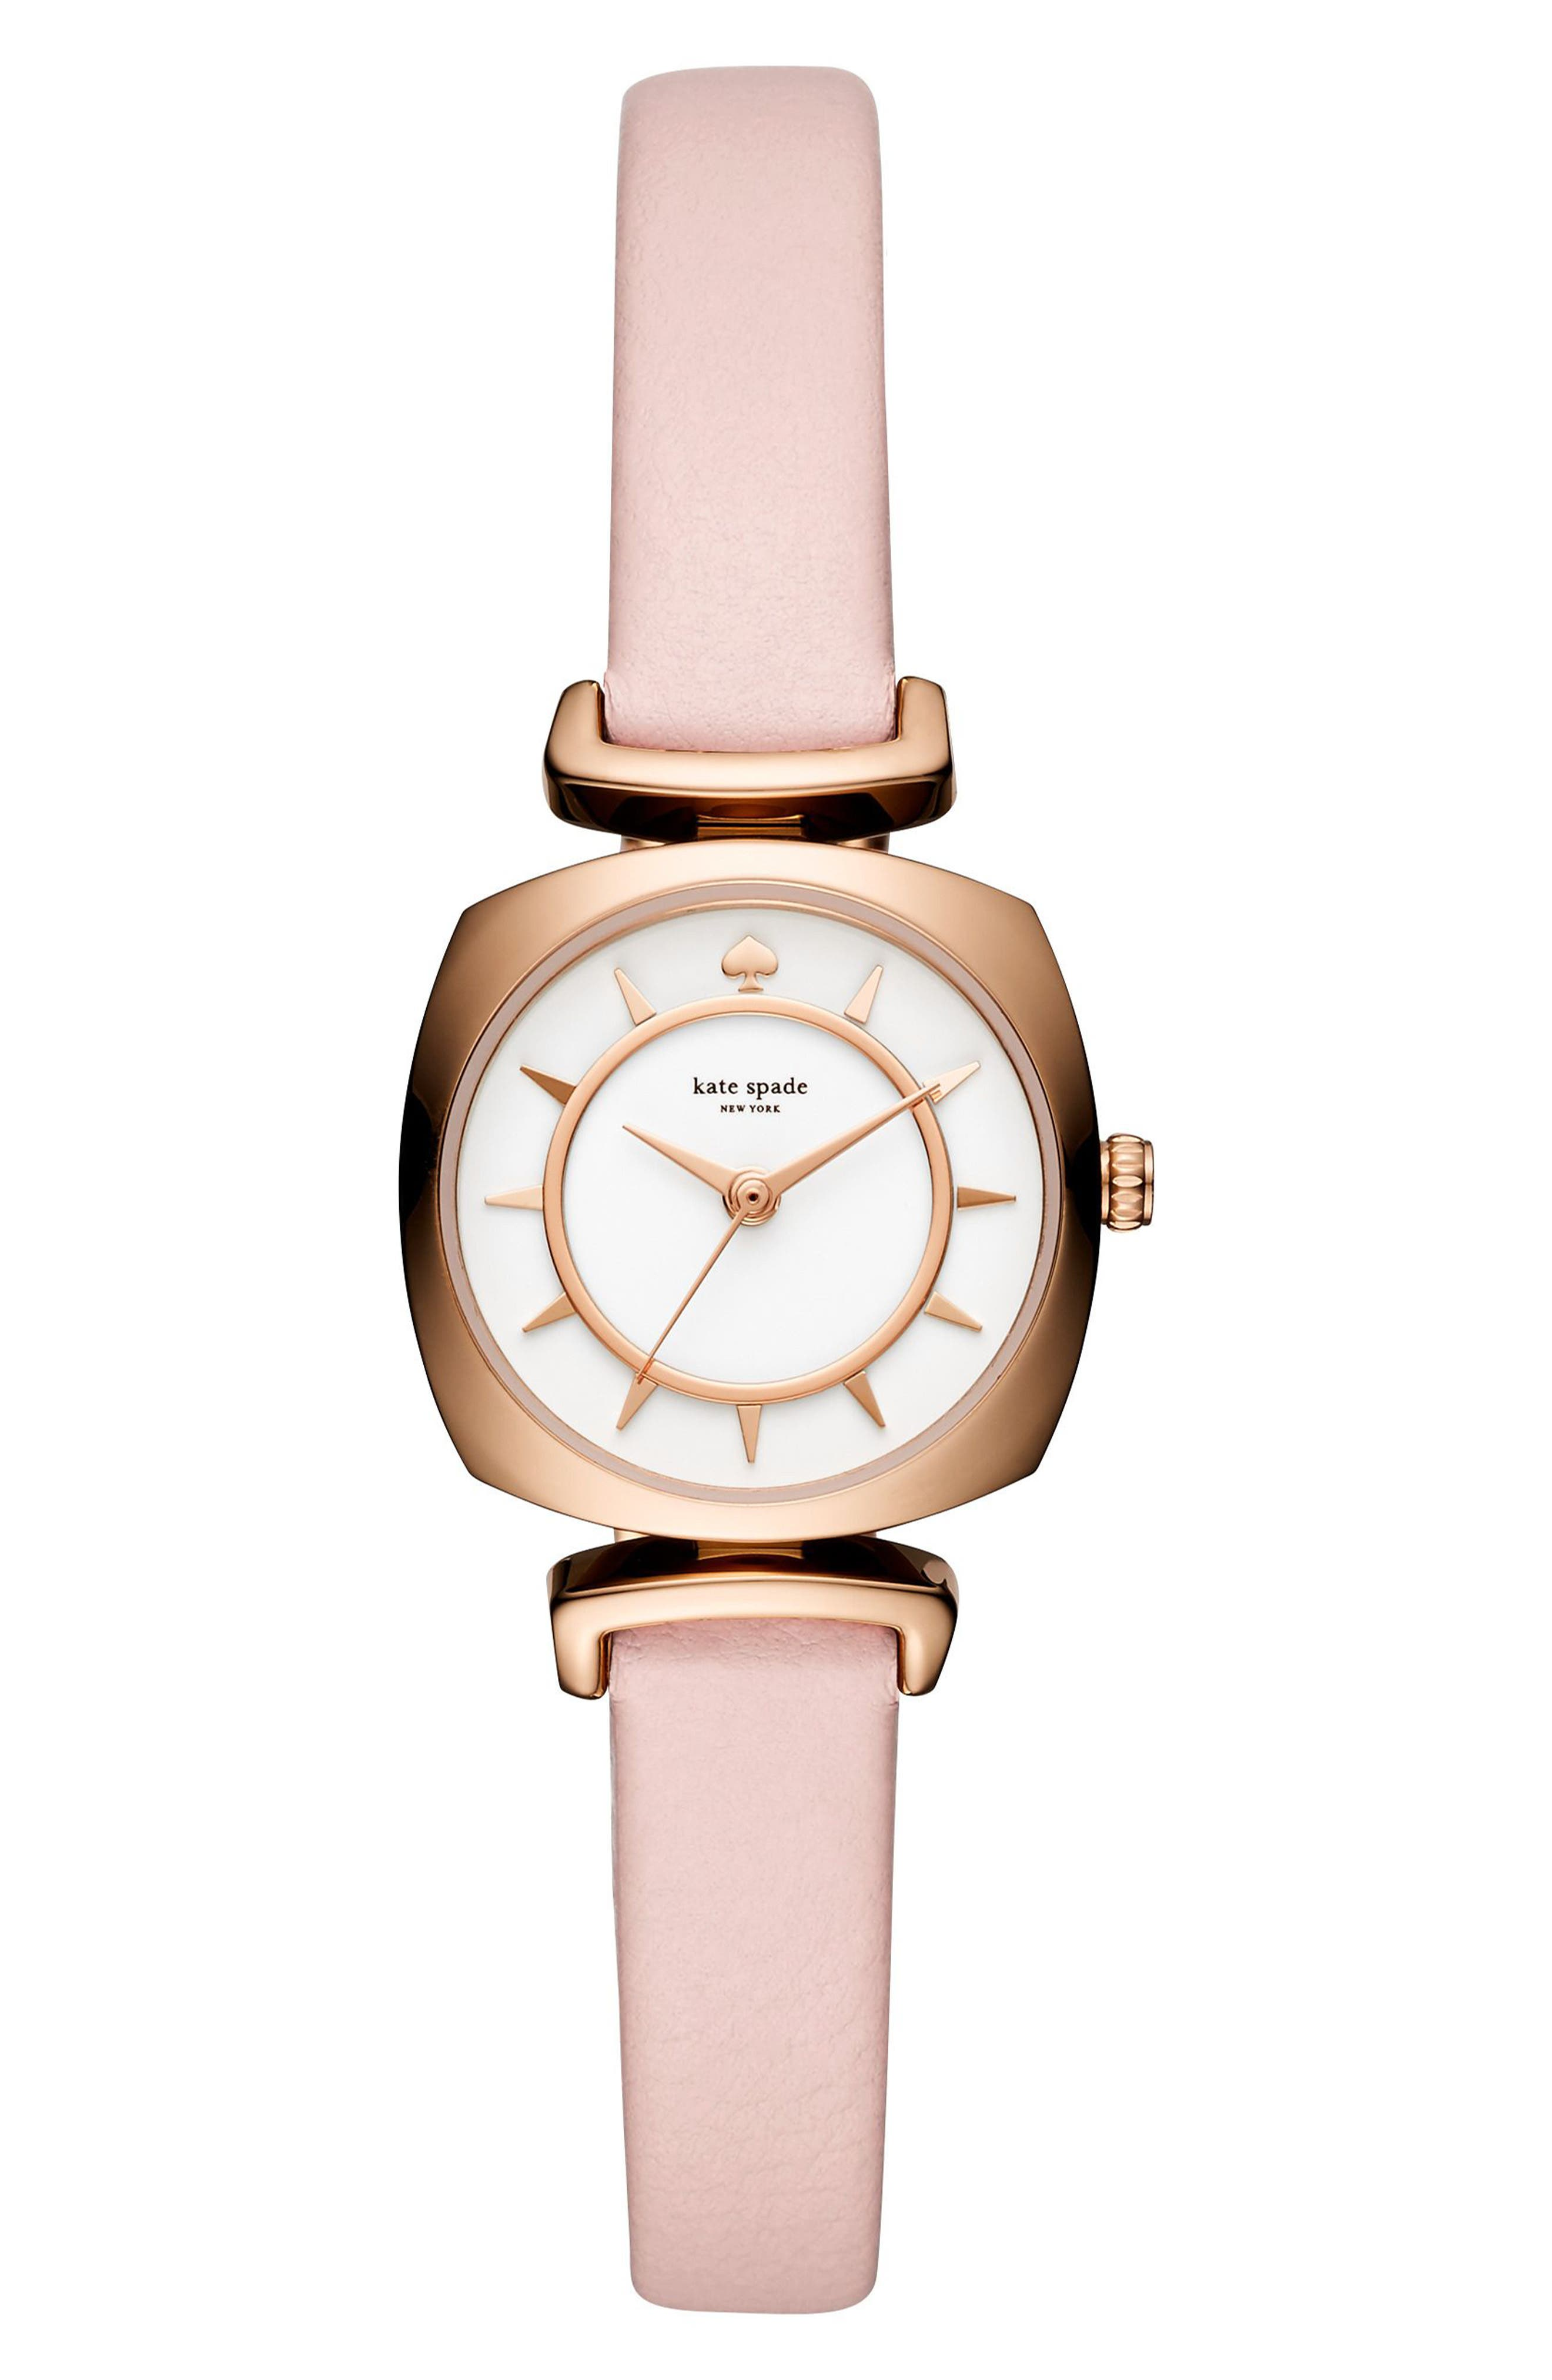 KATE SPADE NEW YORK barrow leather strap watch, 24mm